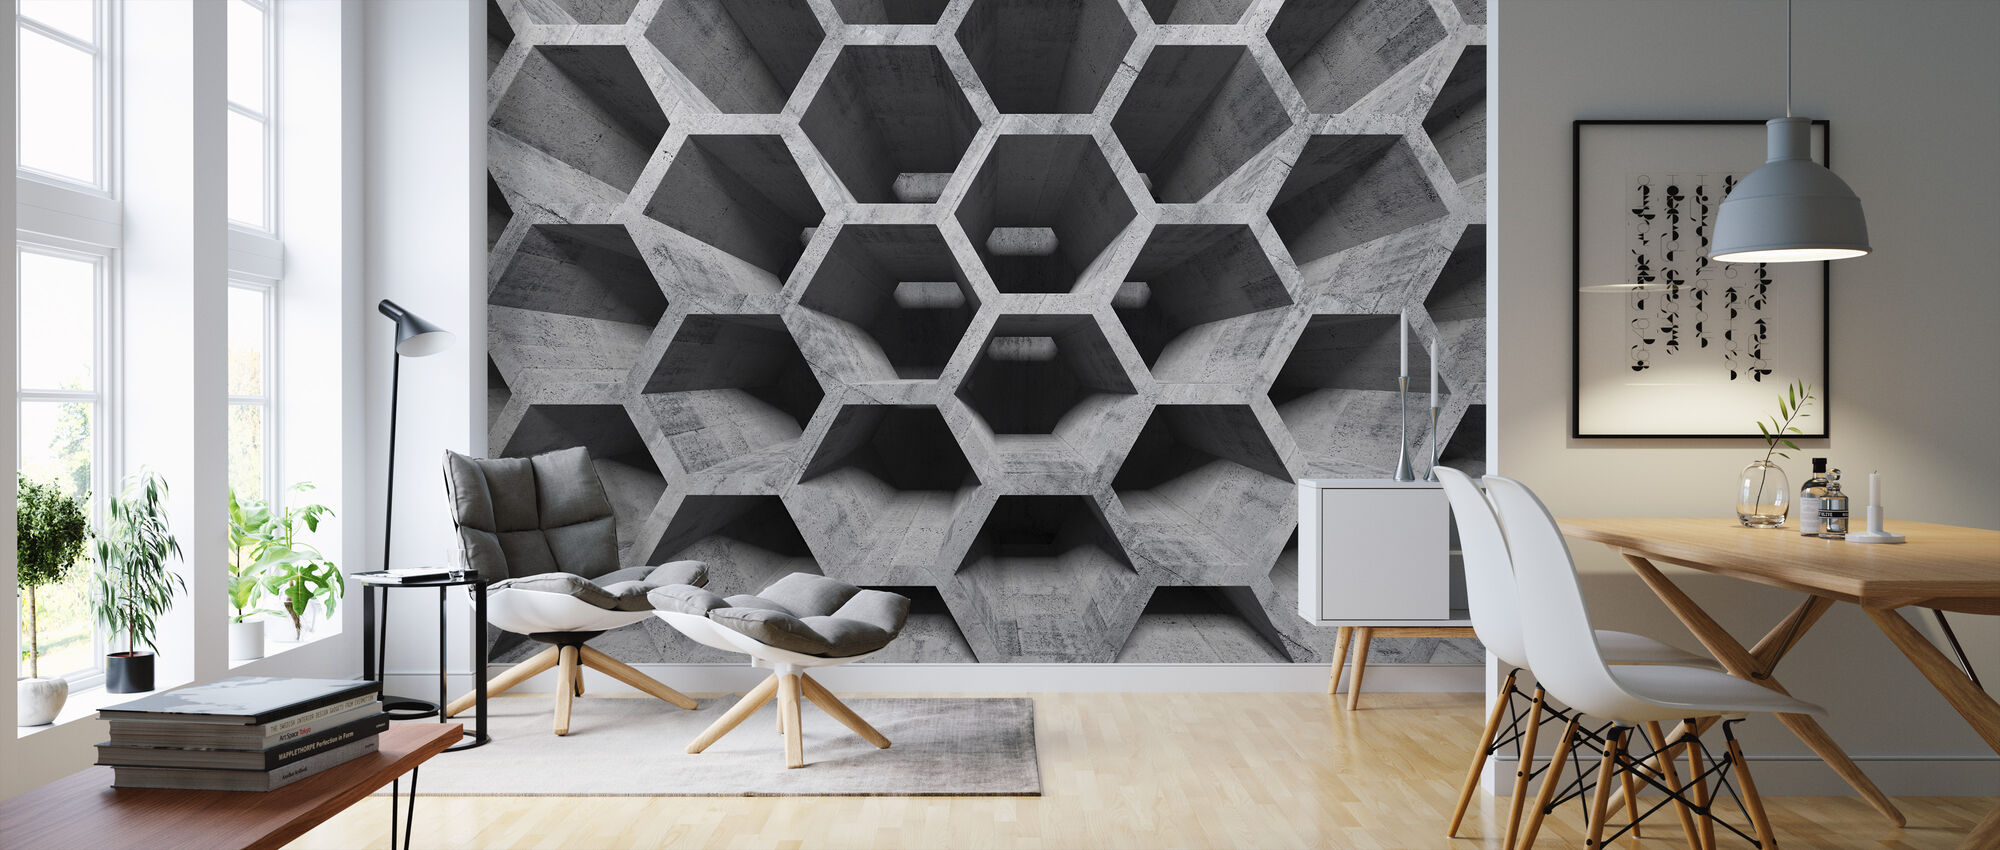 3D Honeycomb Structure - Wallpaper - Living Room